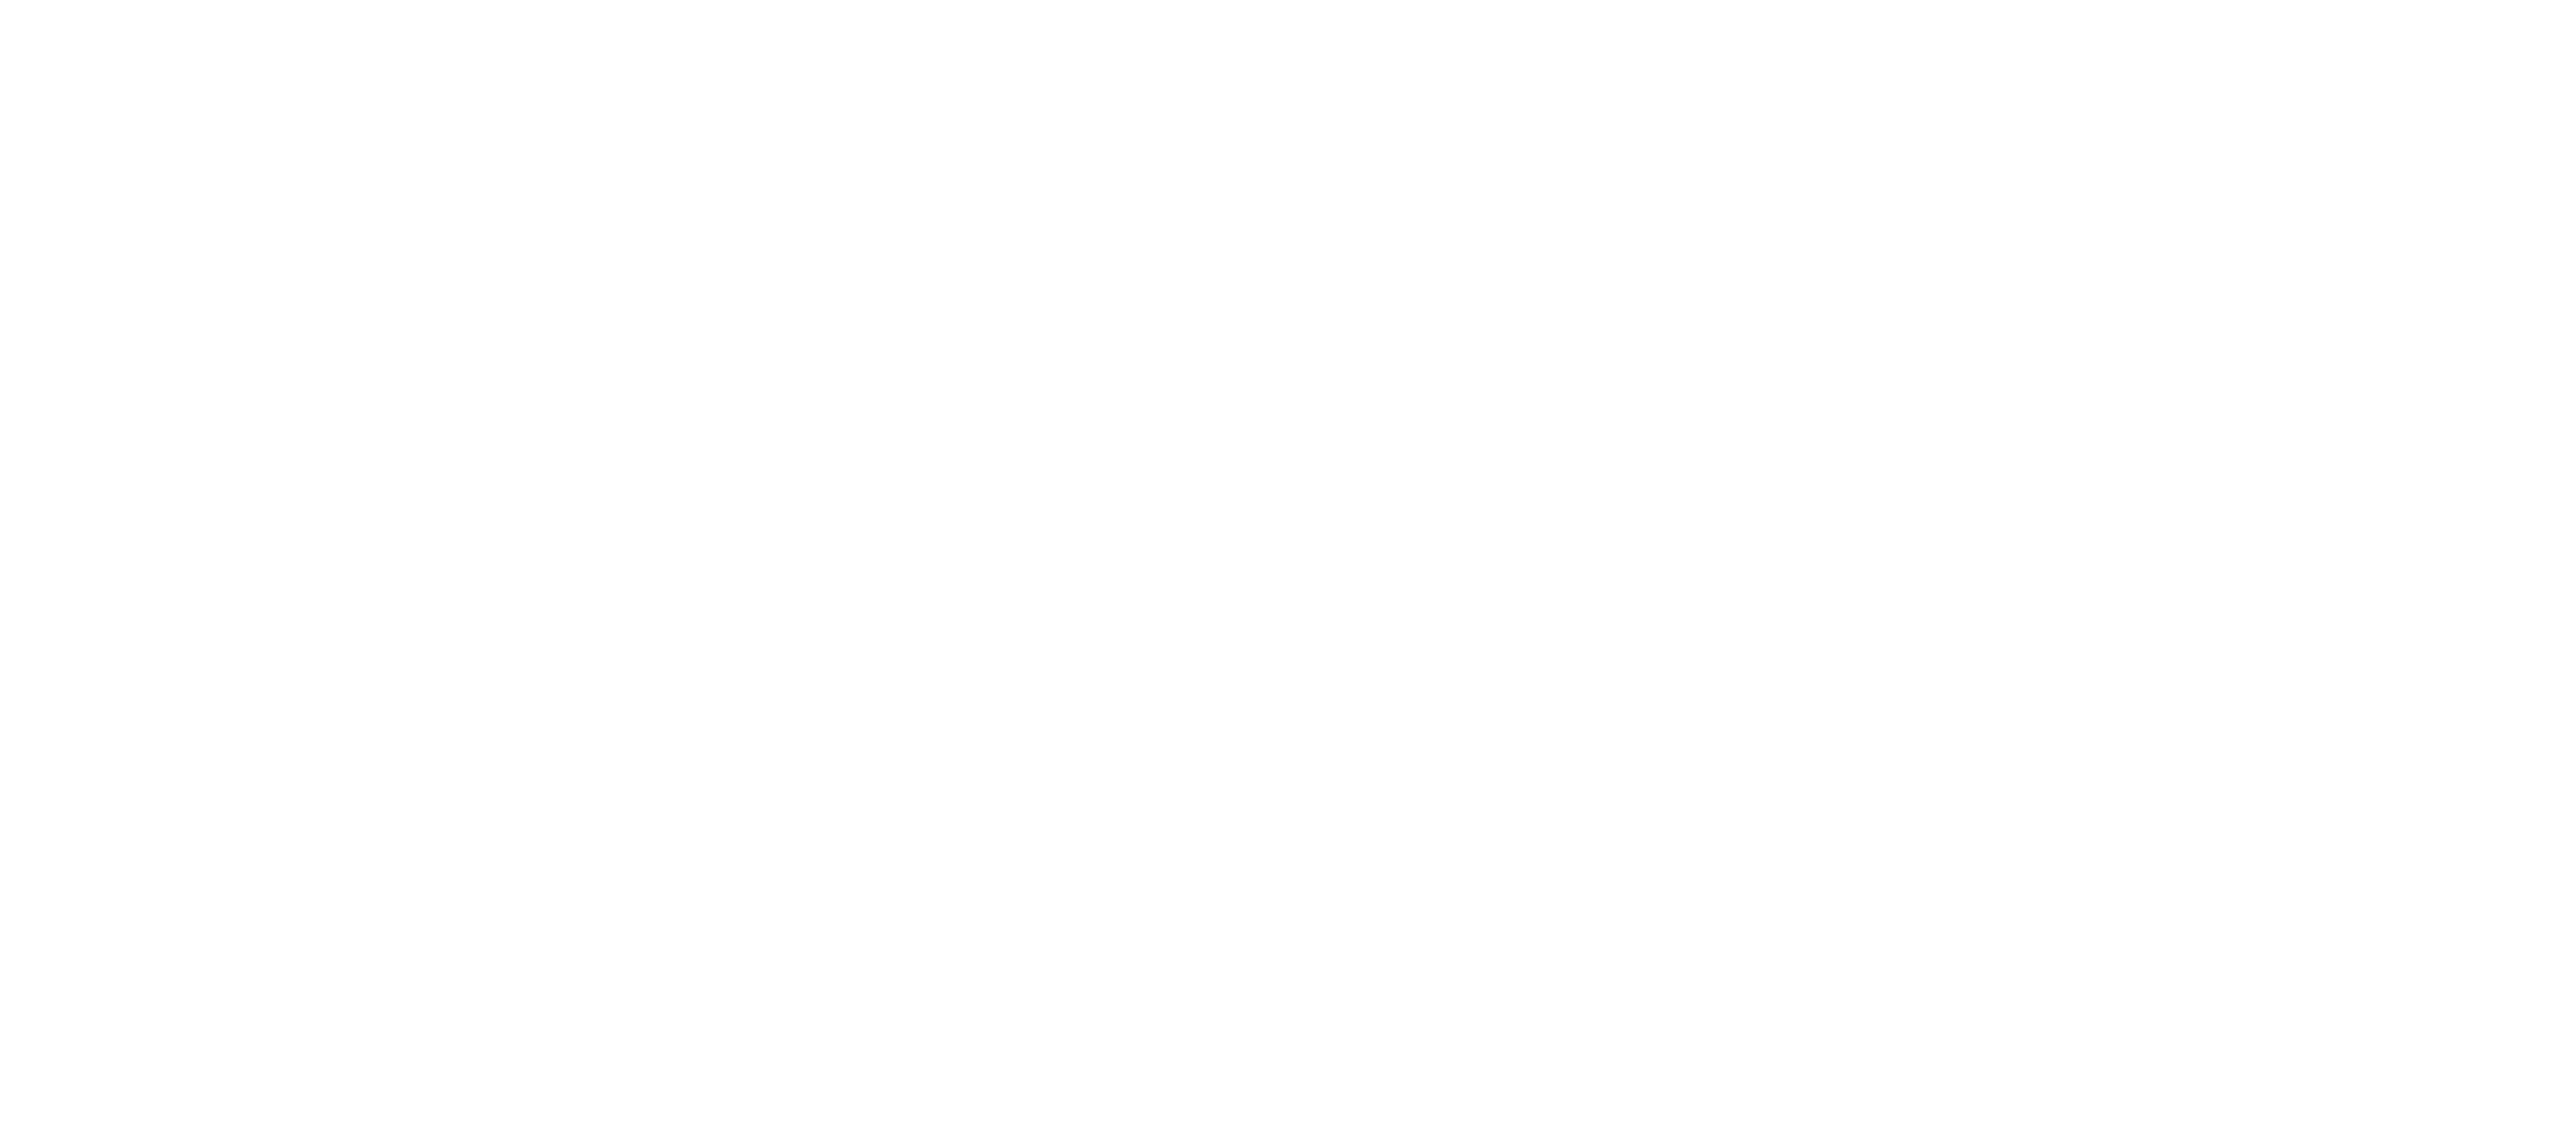 Four Brothers Contracting LLC